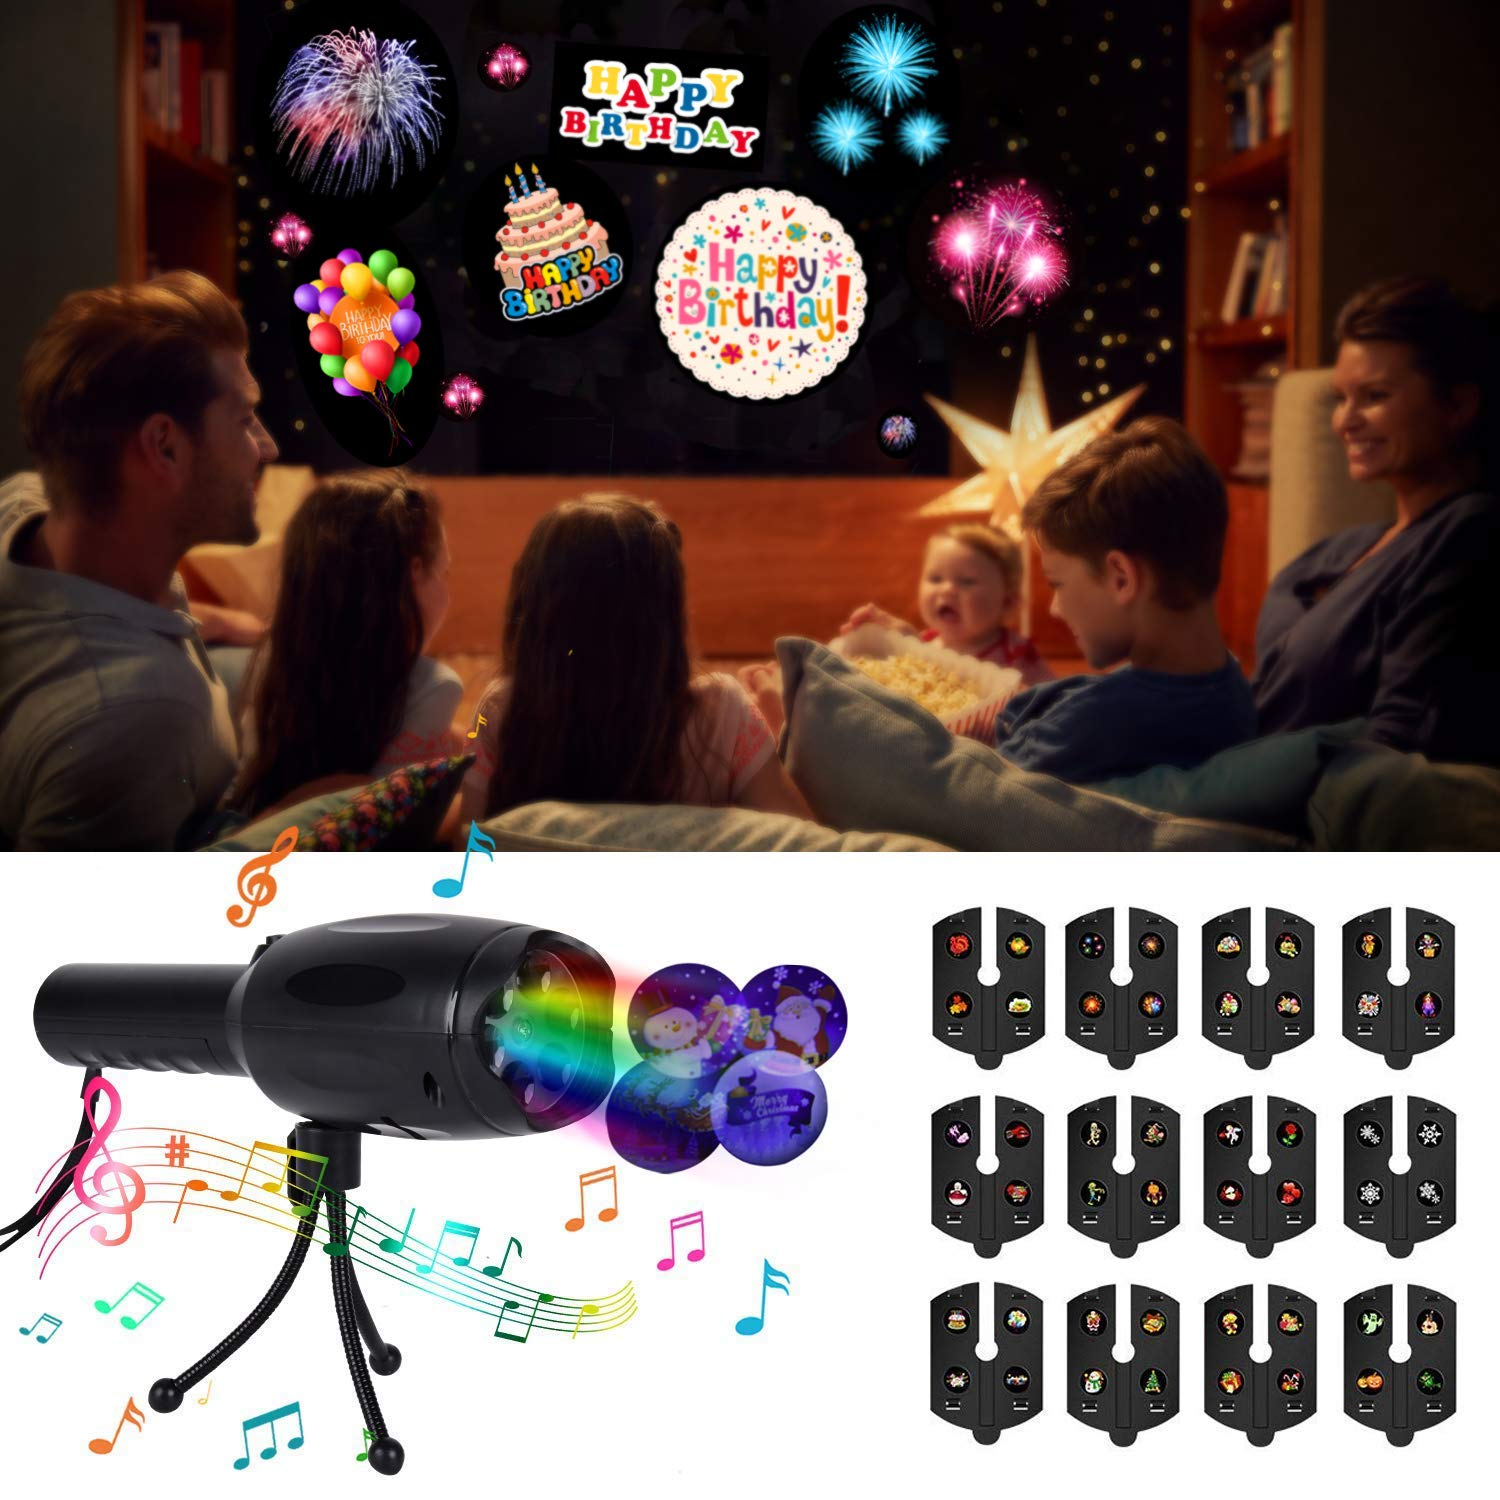 LED Projector Lights,Funpa Musical Handheld Holiday Room Light Projector Rechargeable Flashlight Decorative Portable Party Light with 12 Slides for New Year Birthday Festival Theme Party by FunPa